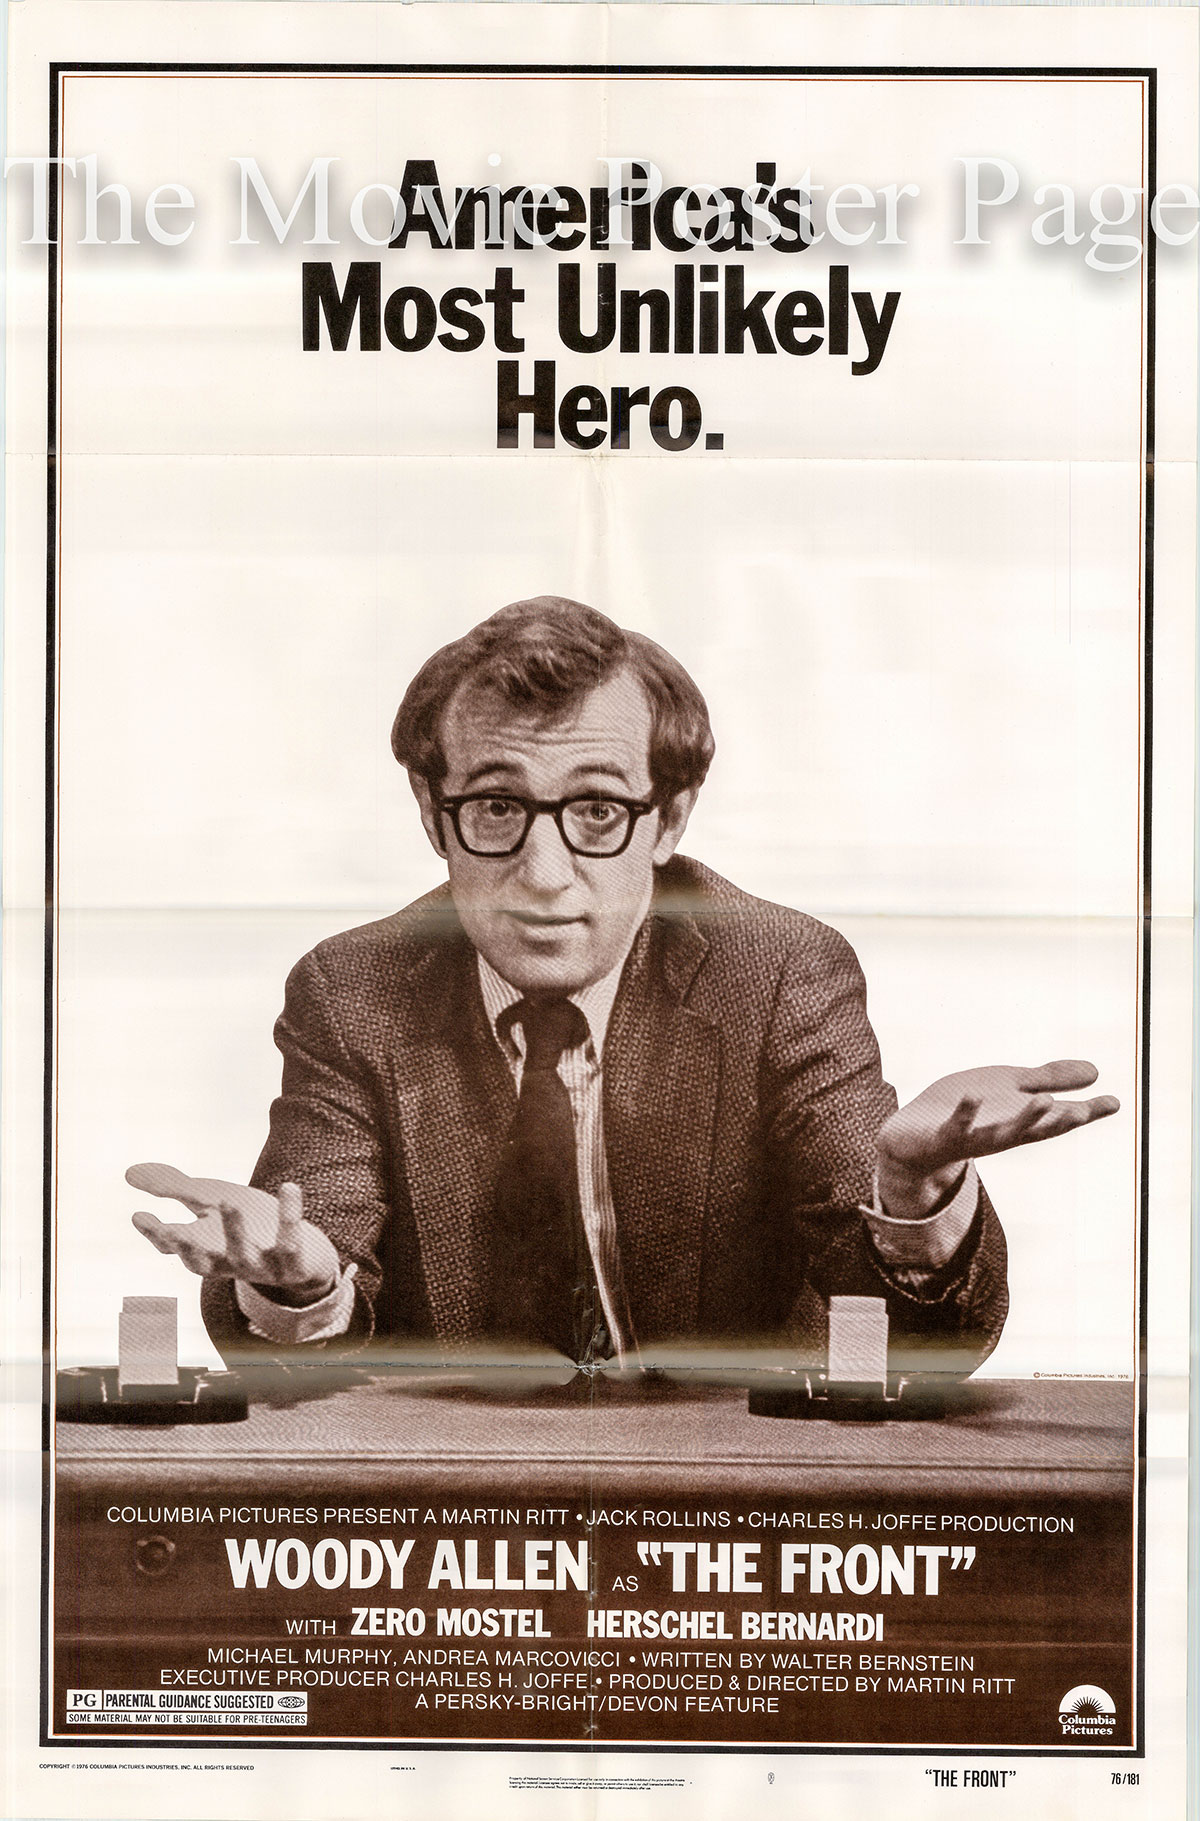 Pictured is a US one-sheet poster for the 1976 Martin Ritt film The Front starring Woody Allen as Howard Prince.